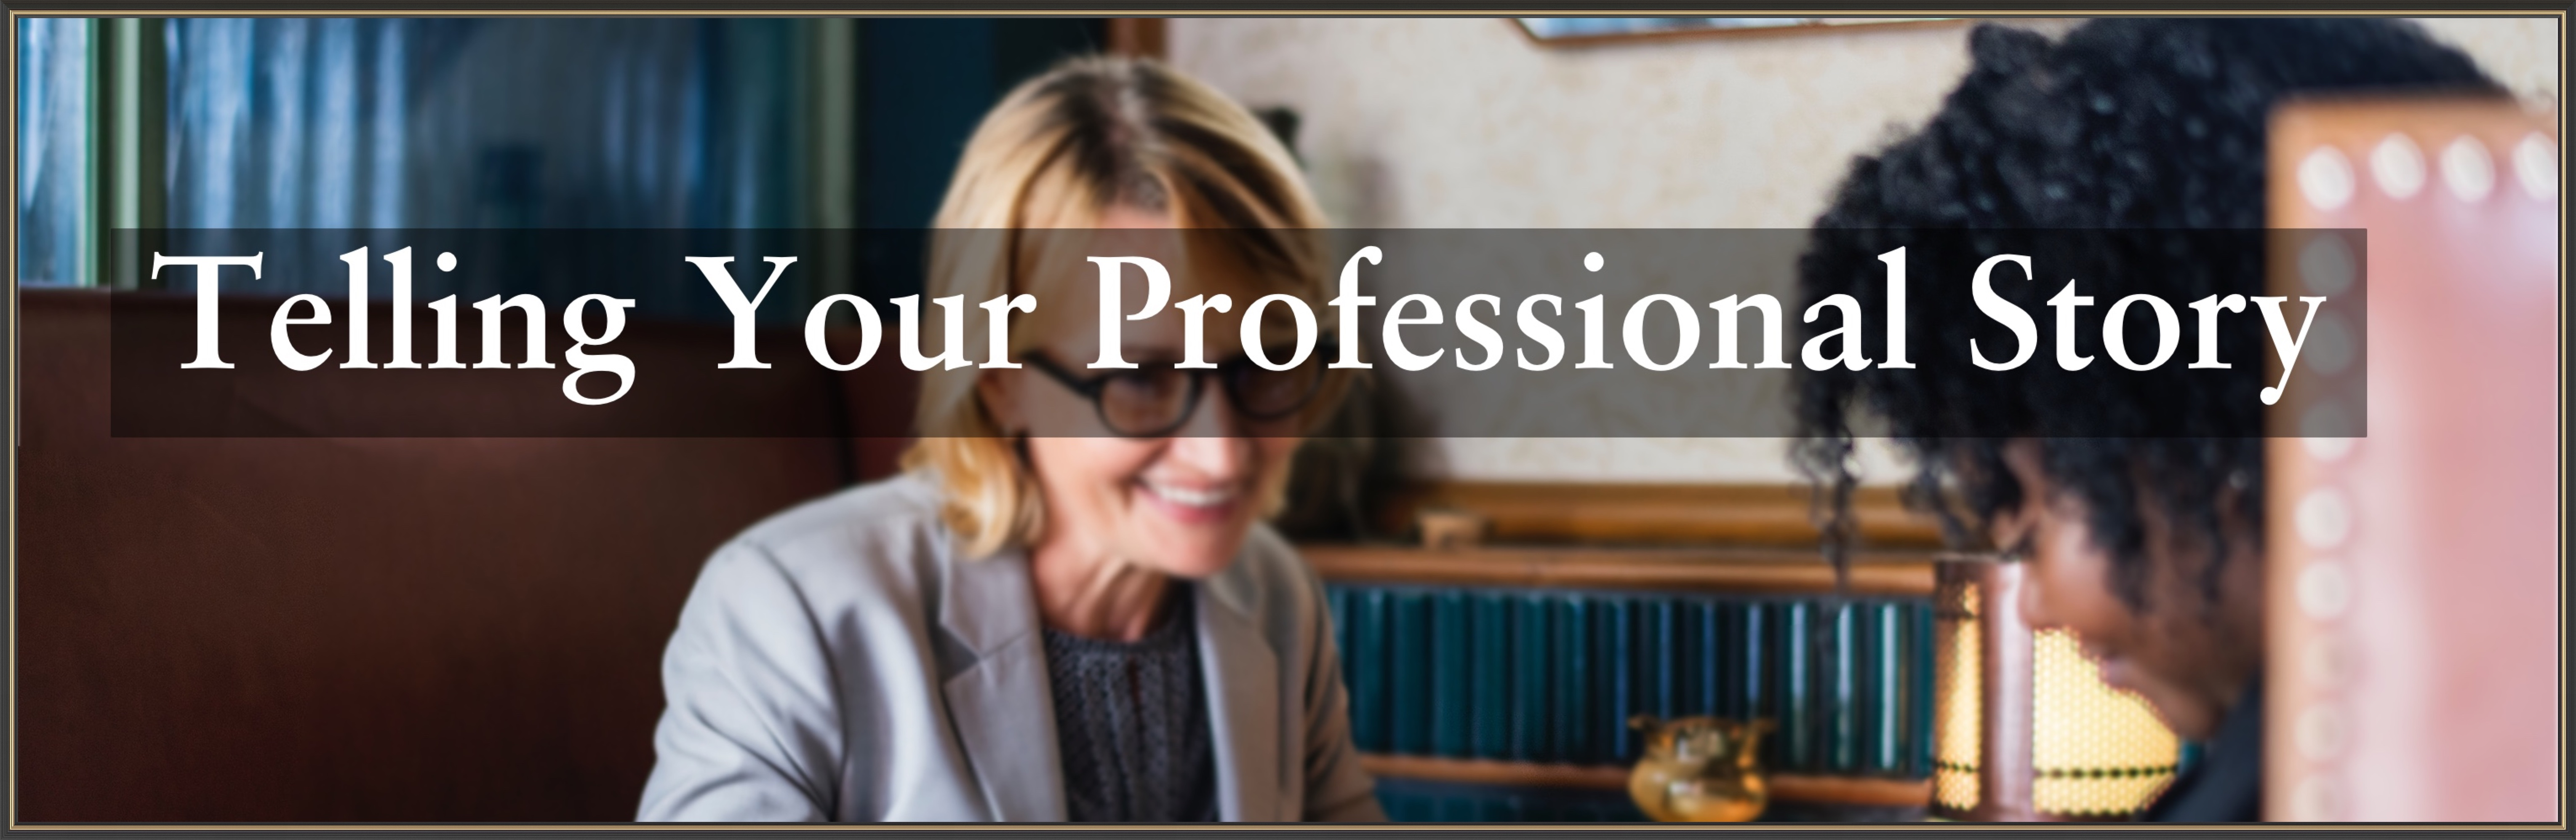 Telling Your Professional Story